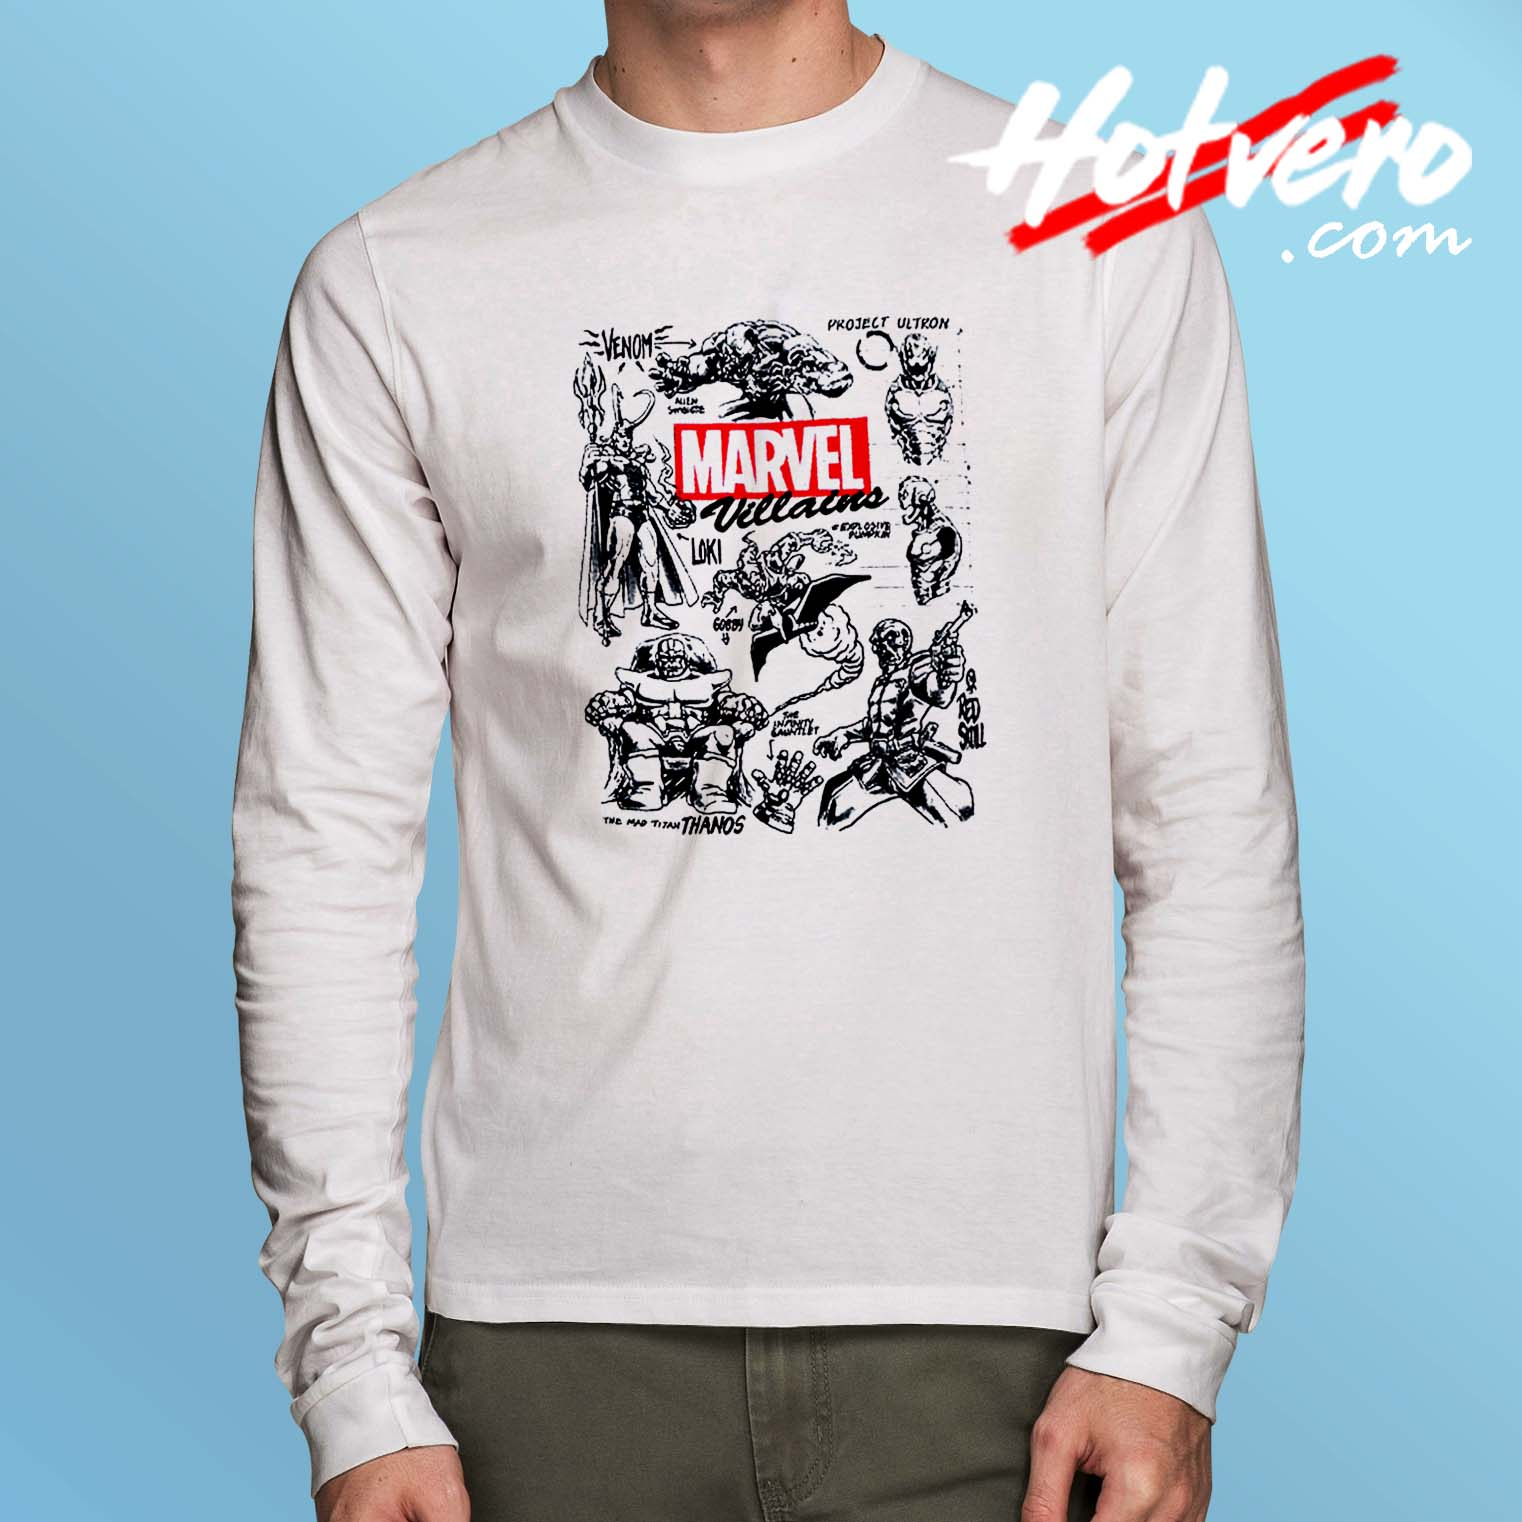 c910754f Marvel Vilains All Character Long Sleeve Shirt - Hotvero.com